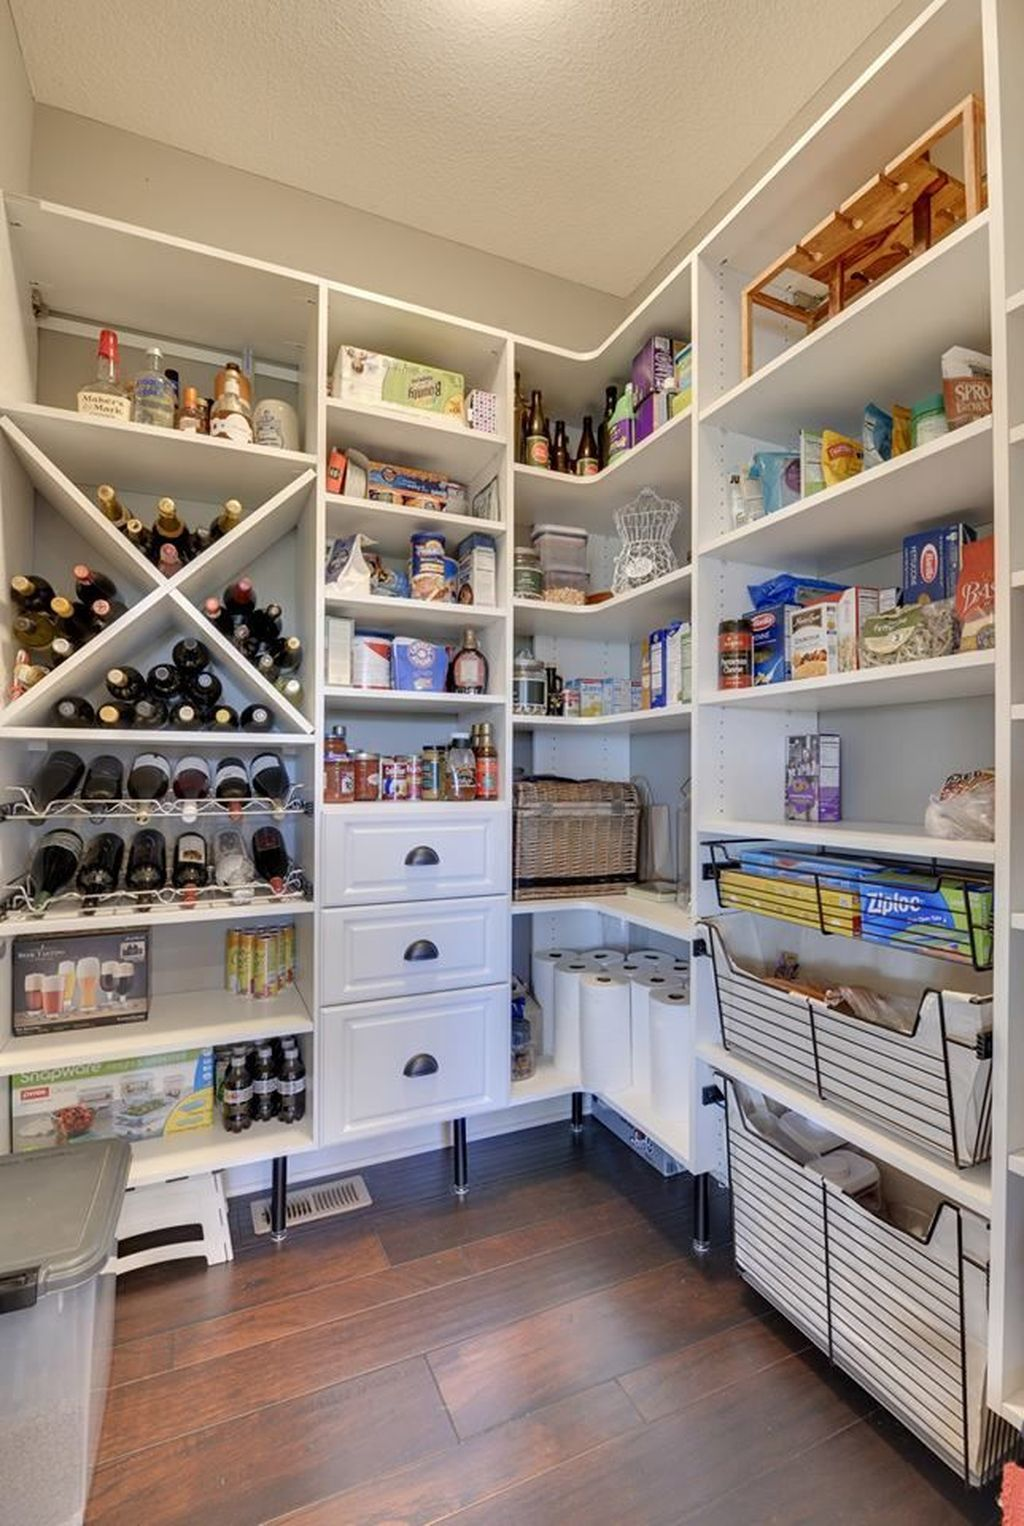 54 Fresh And Elegant California Closet Designs An Organized Closet Can Transform The Total Appearance And Style Of Pantry Remodel Pantry Layout Pantry Design